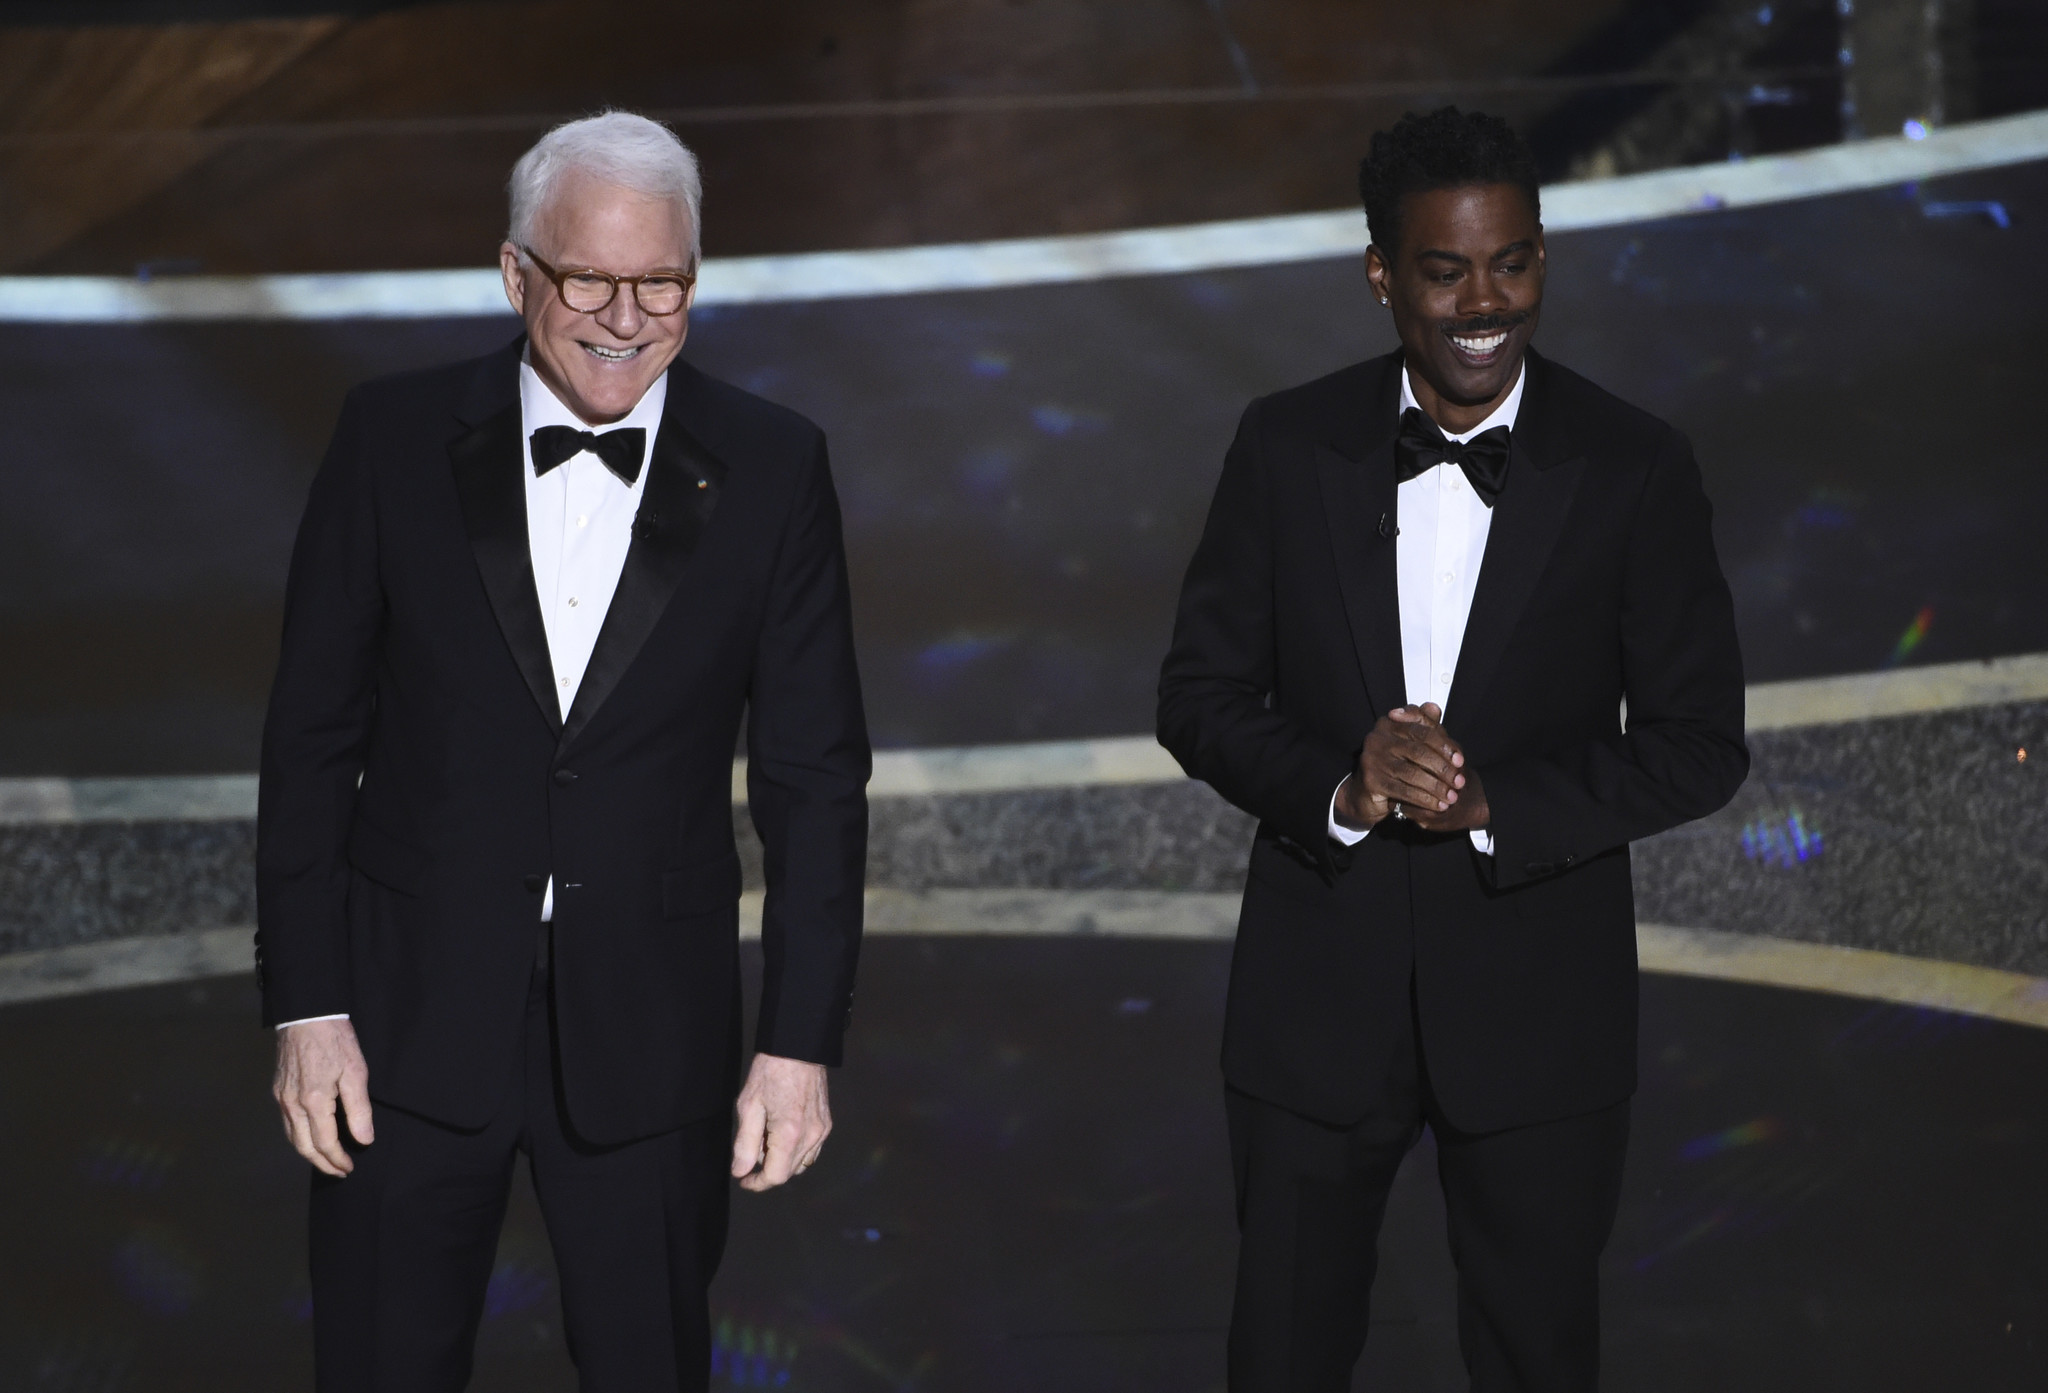 Chris Rock and Steve Martin roast the Oscars during hilarious early segment